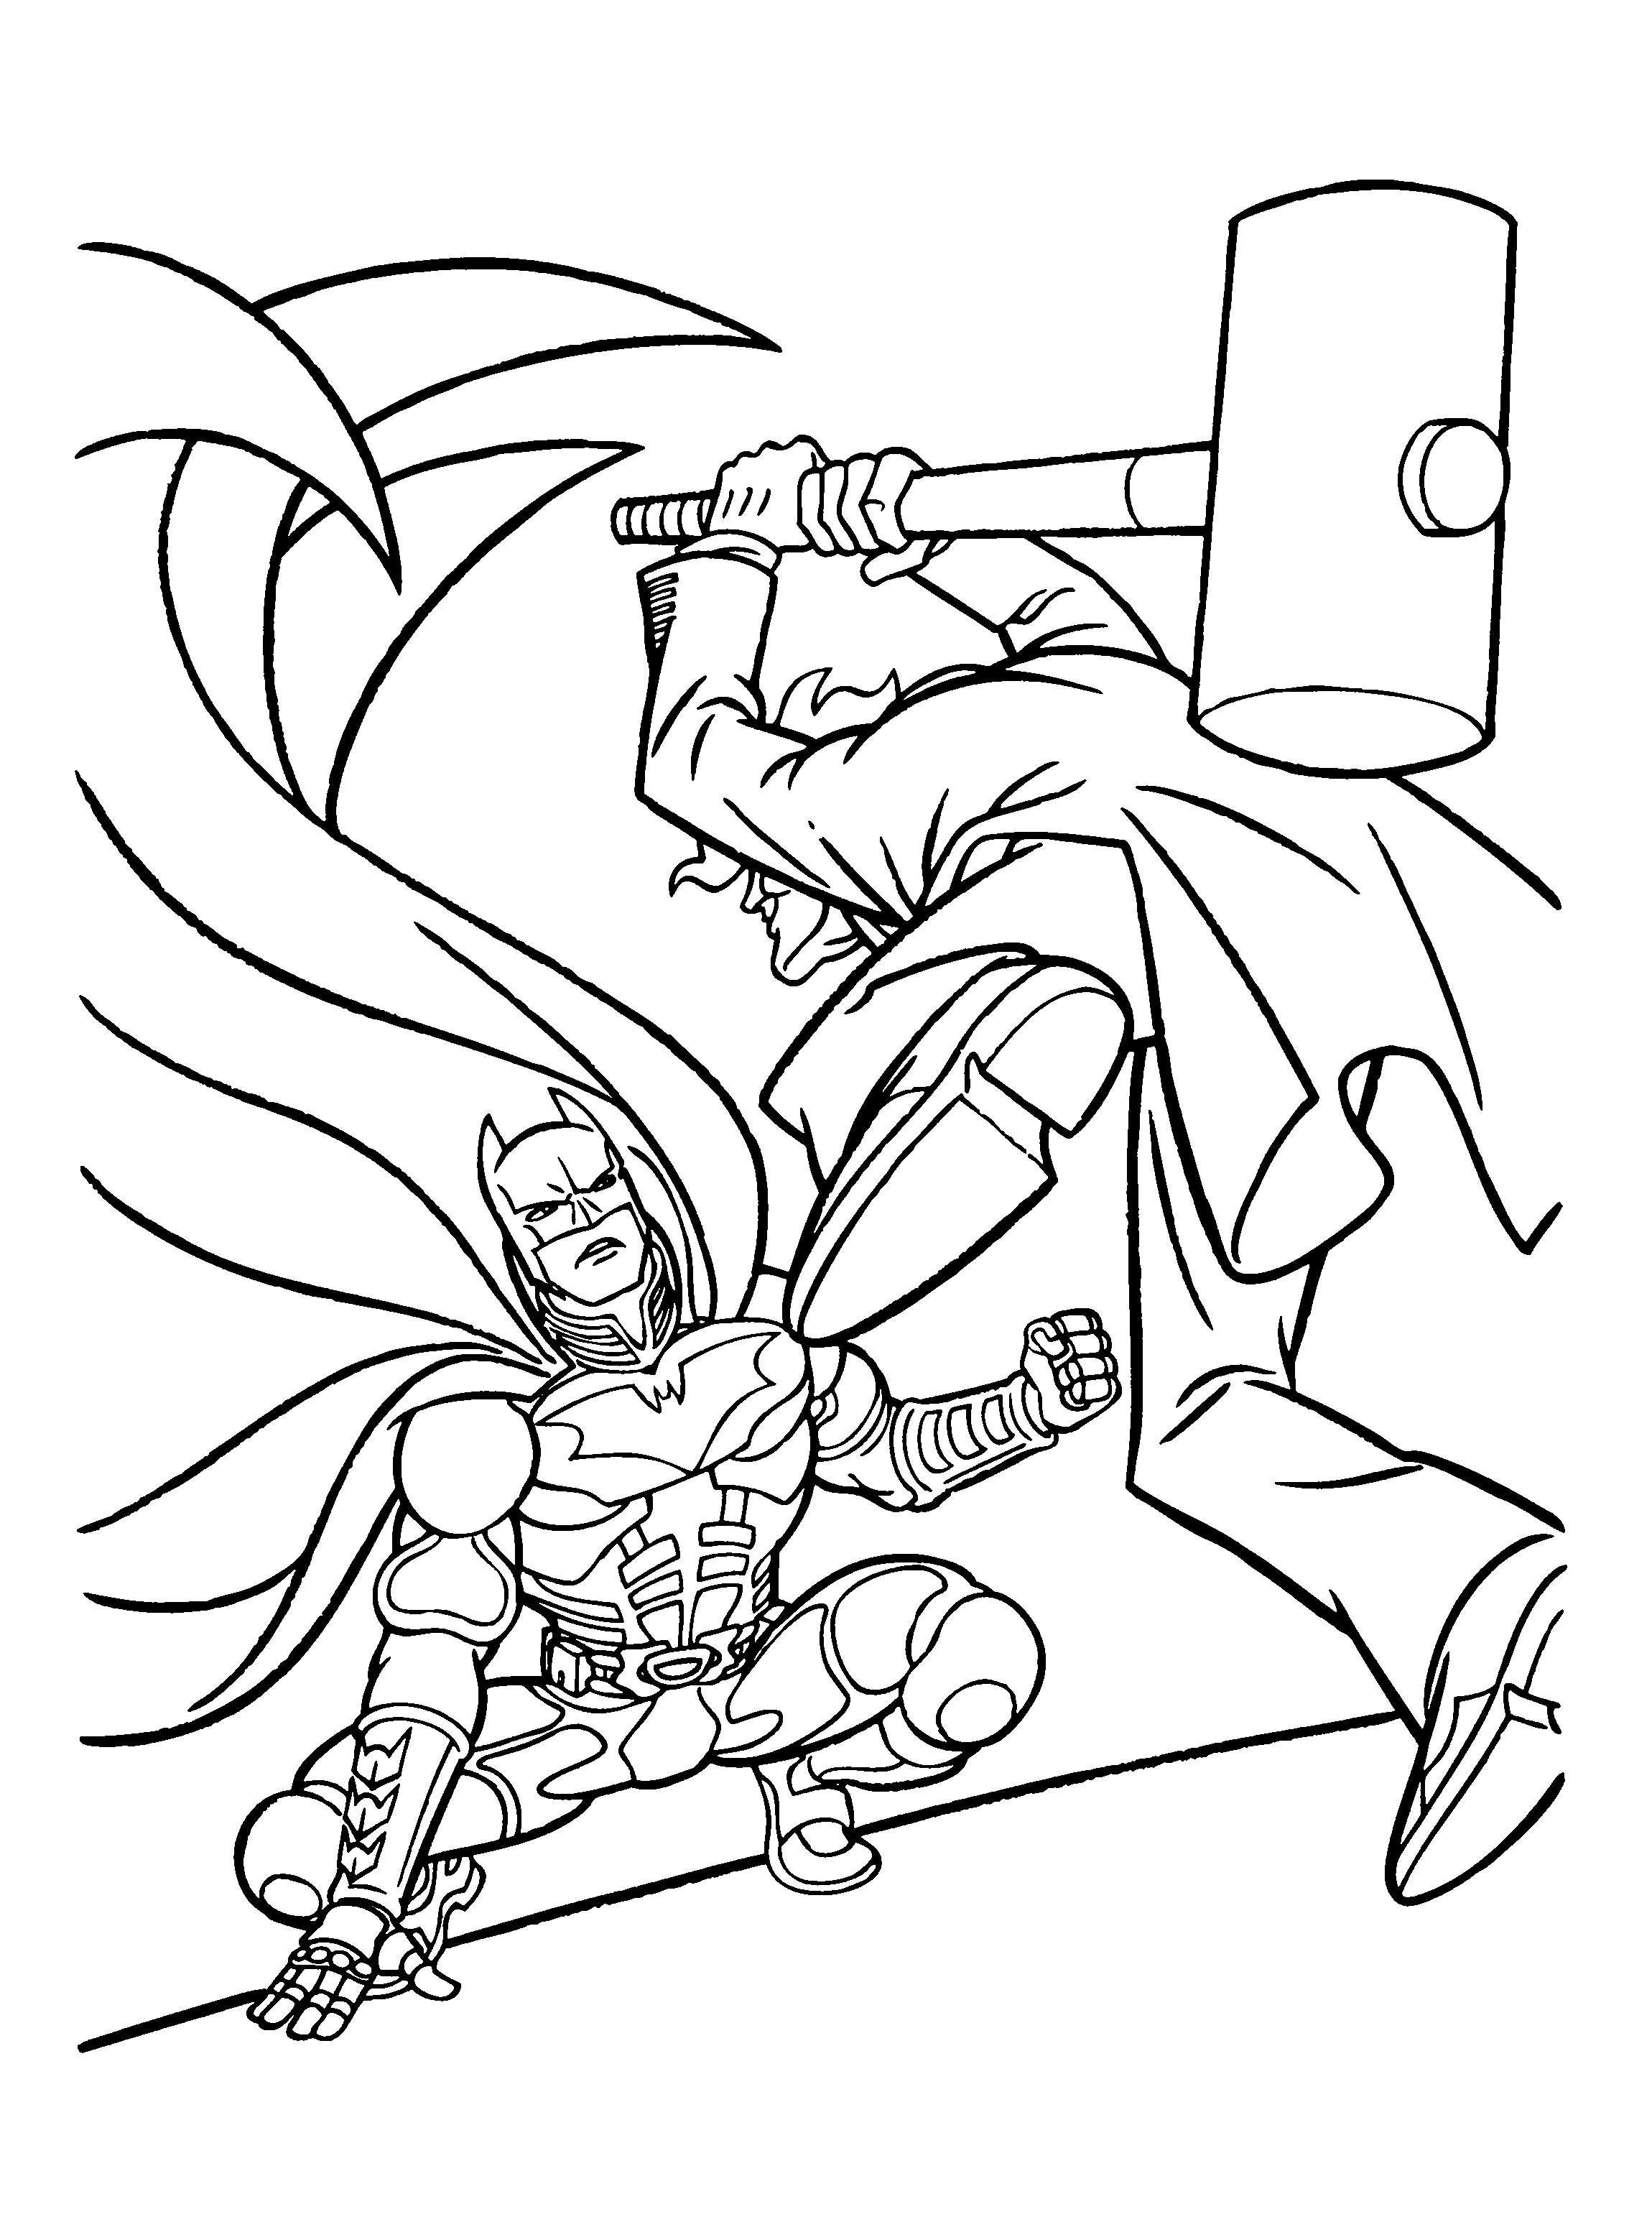 Kleurplaten Batman Auto.21 Digimon Coloring Pages Collections Free Coloring Pages